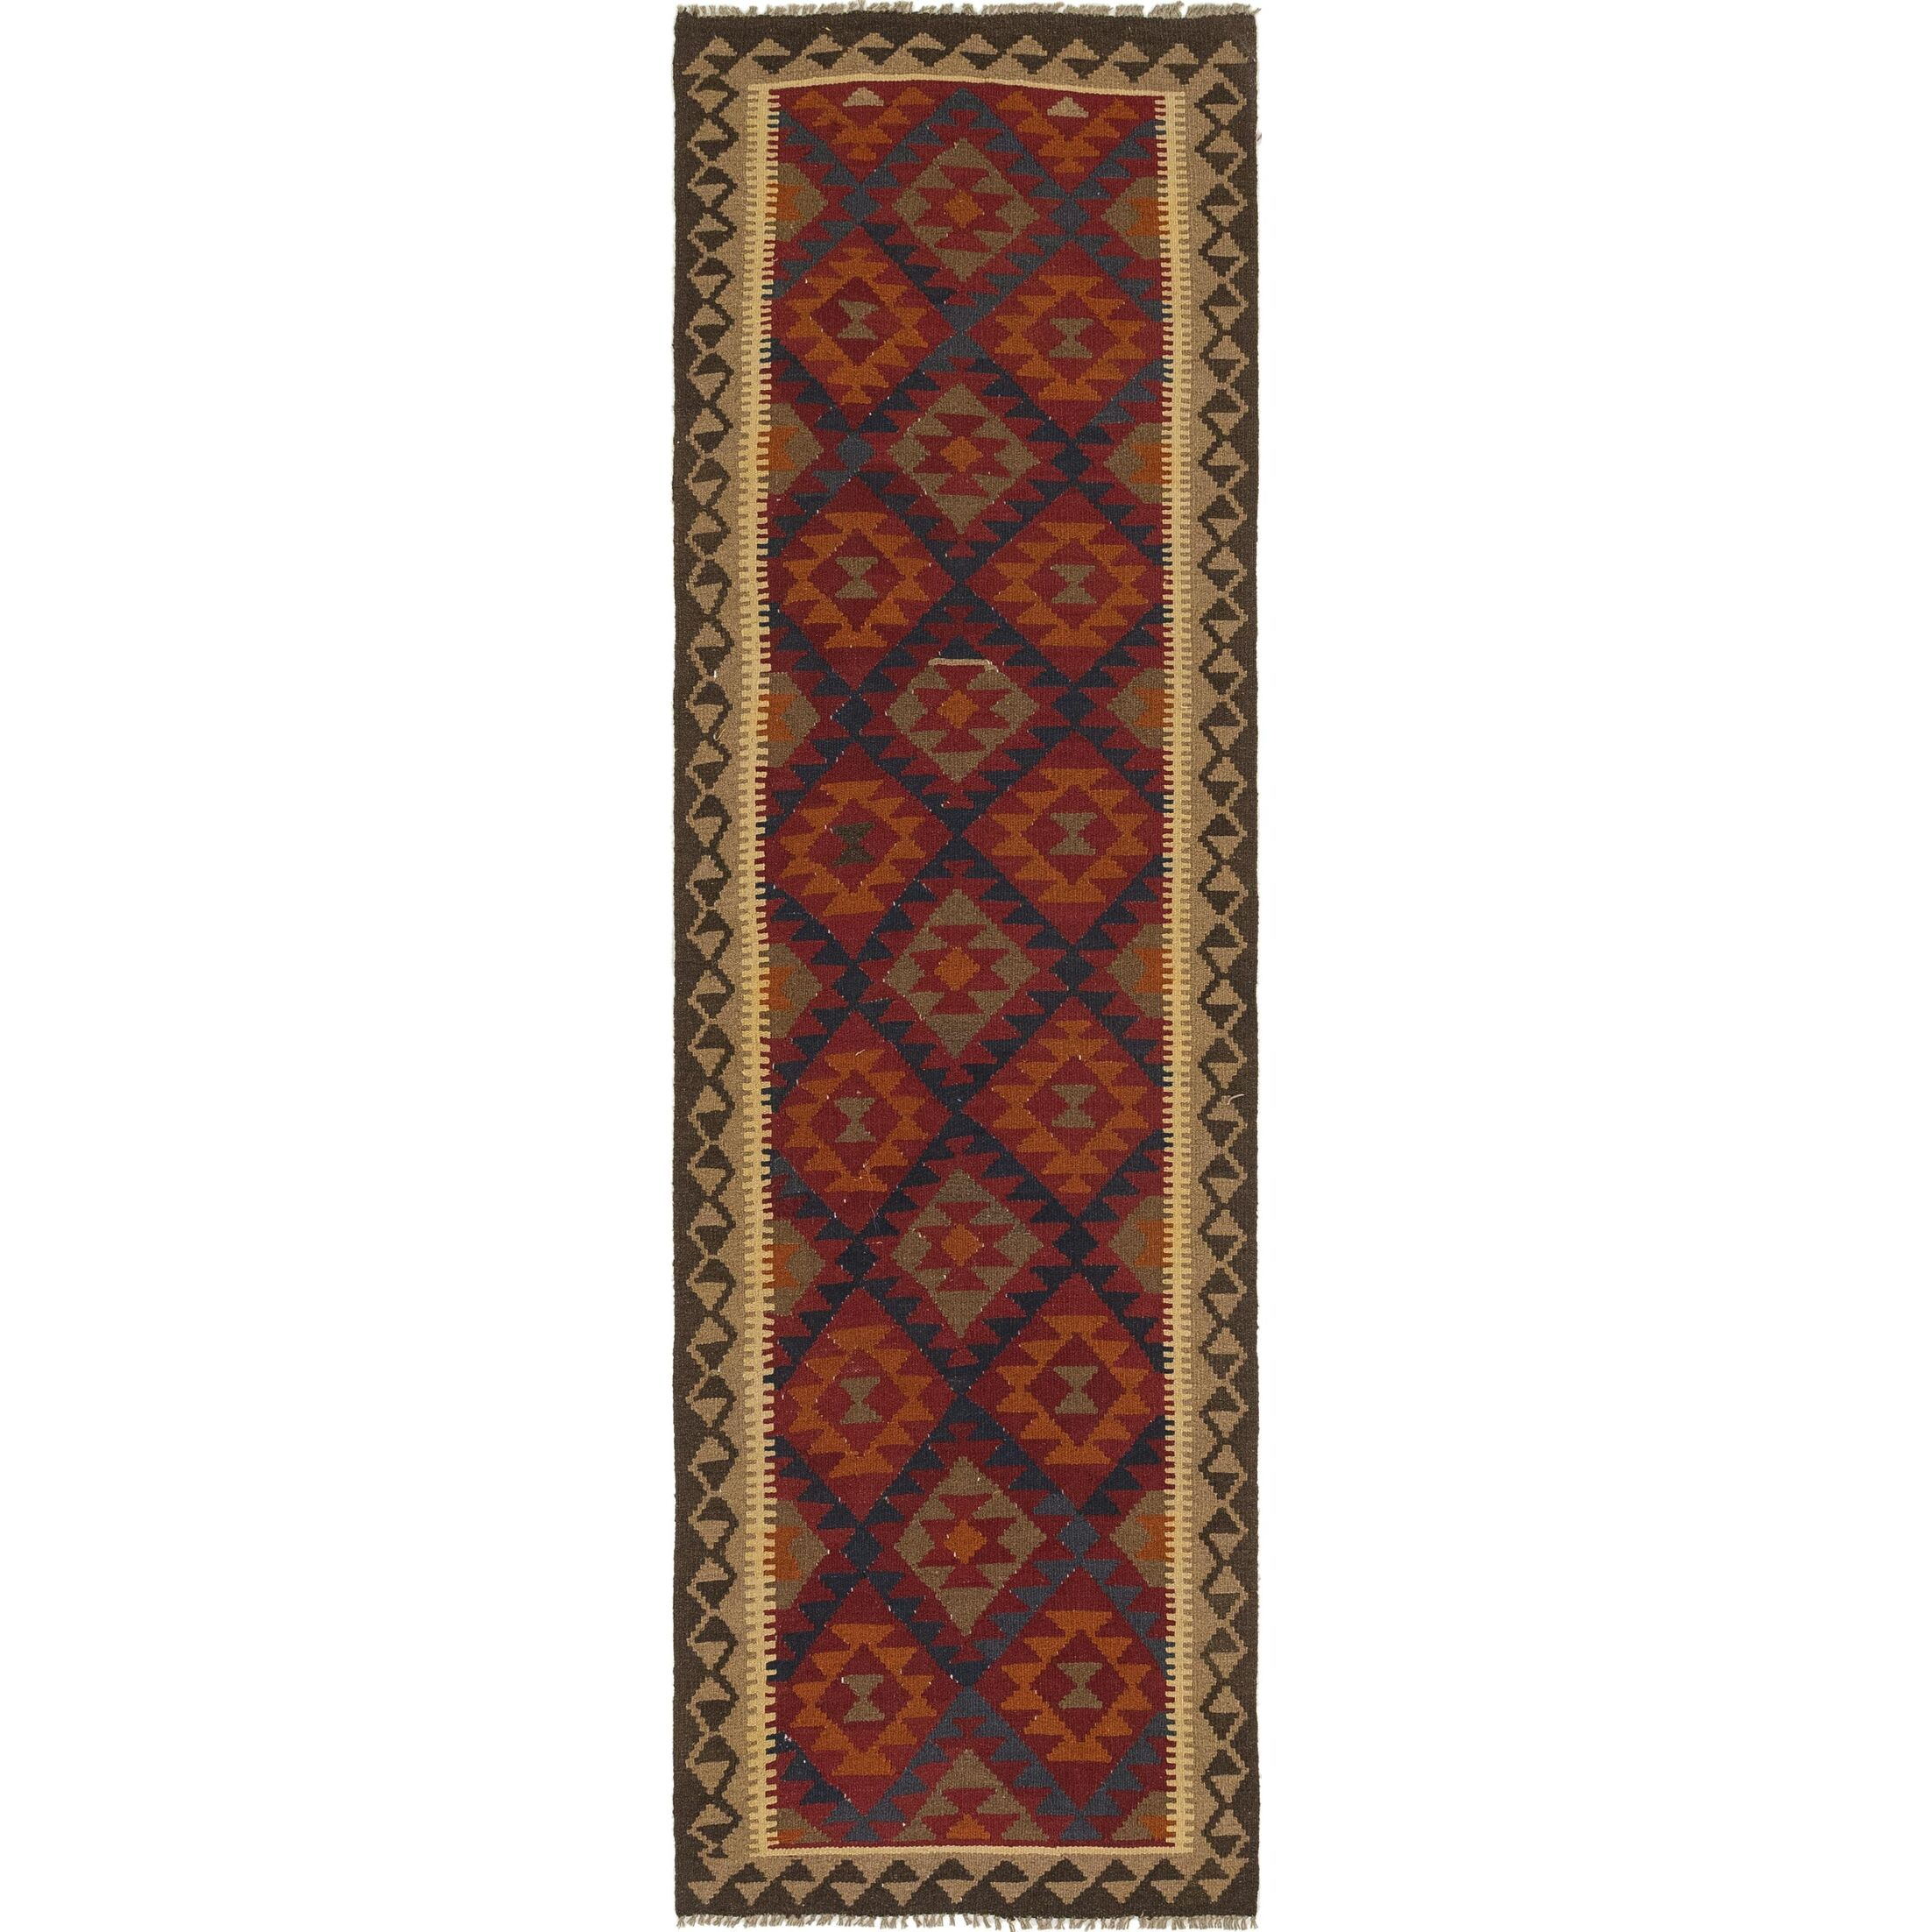 One-of-a-Kind Lorain Hand-Knotted Runner 2'10